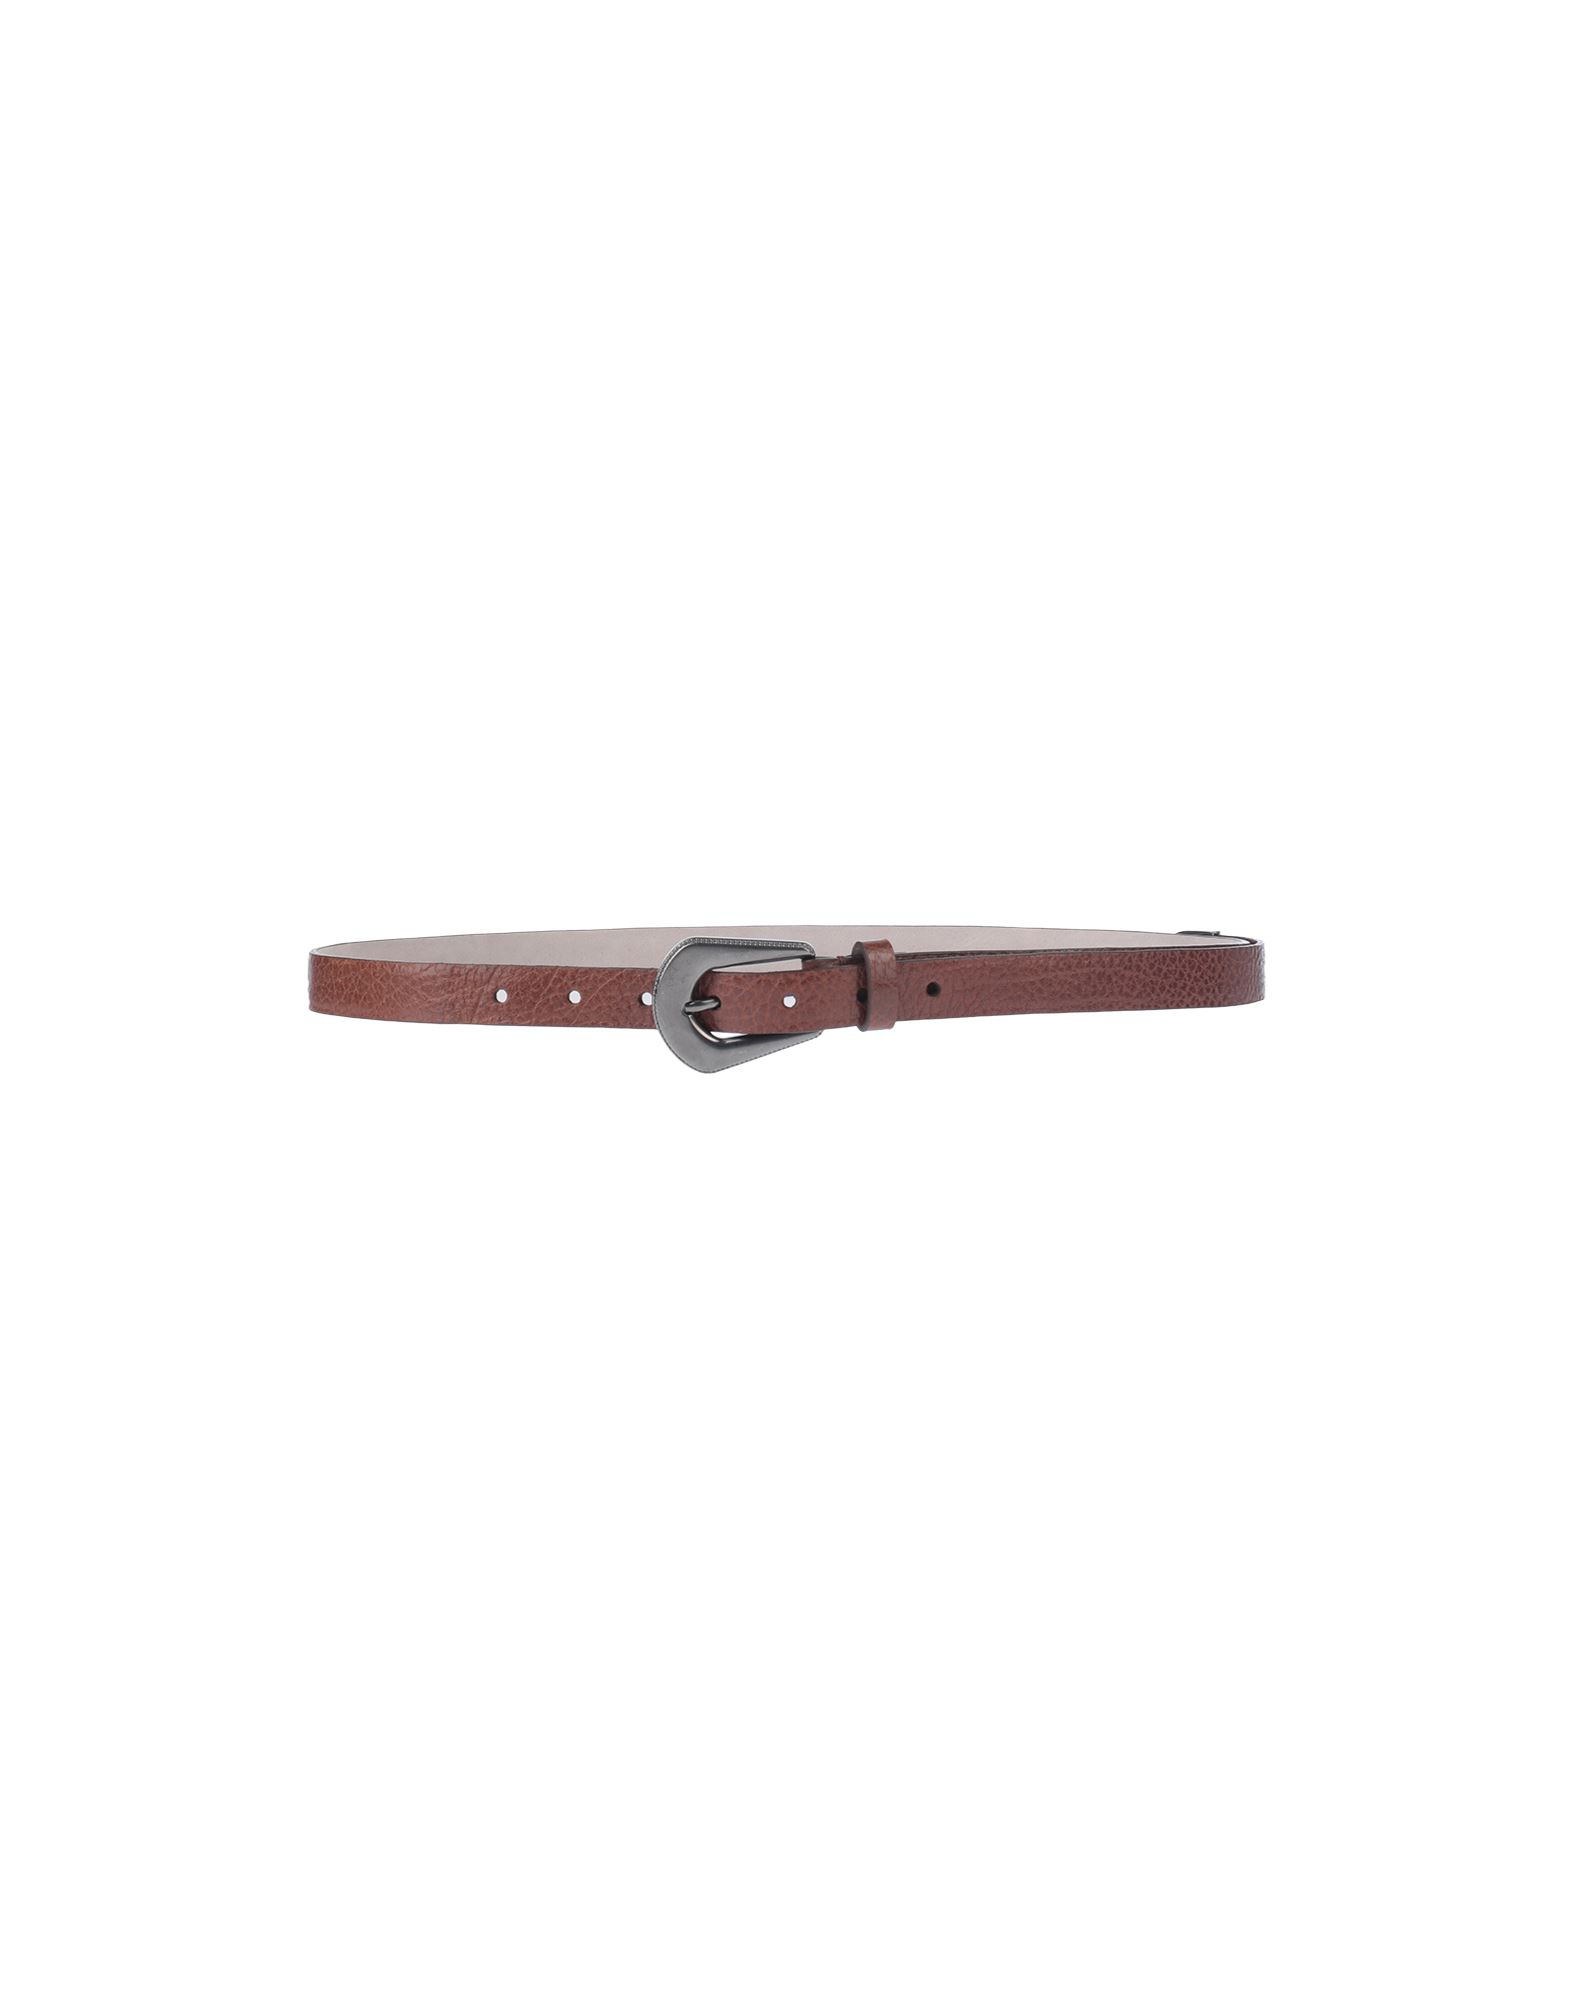 BRUNELLO CUCINELLI Belts. leather, textured leather, no appliqués, solid color, narrow, buckle fastening, contains non-textile parts of animal origin. Soft Leather